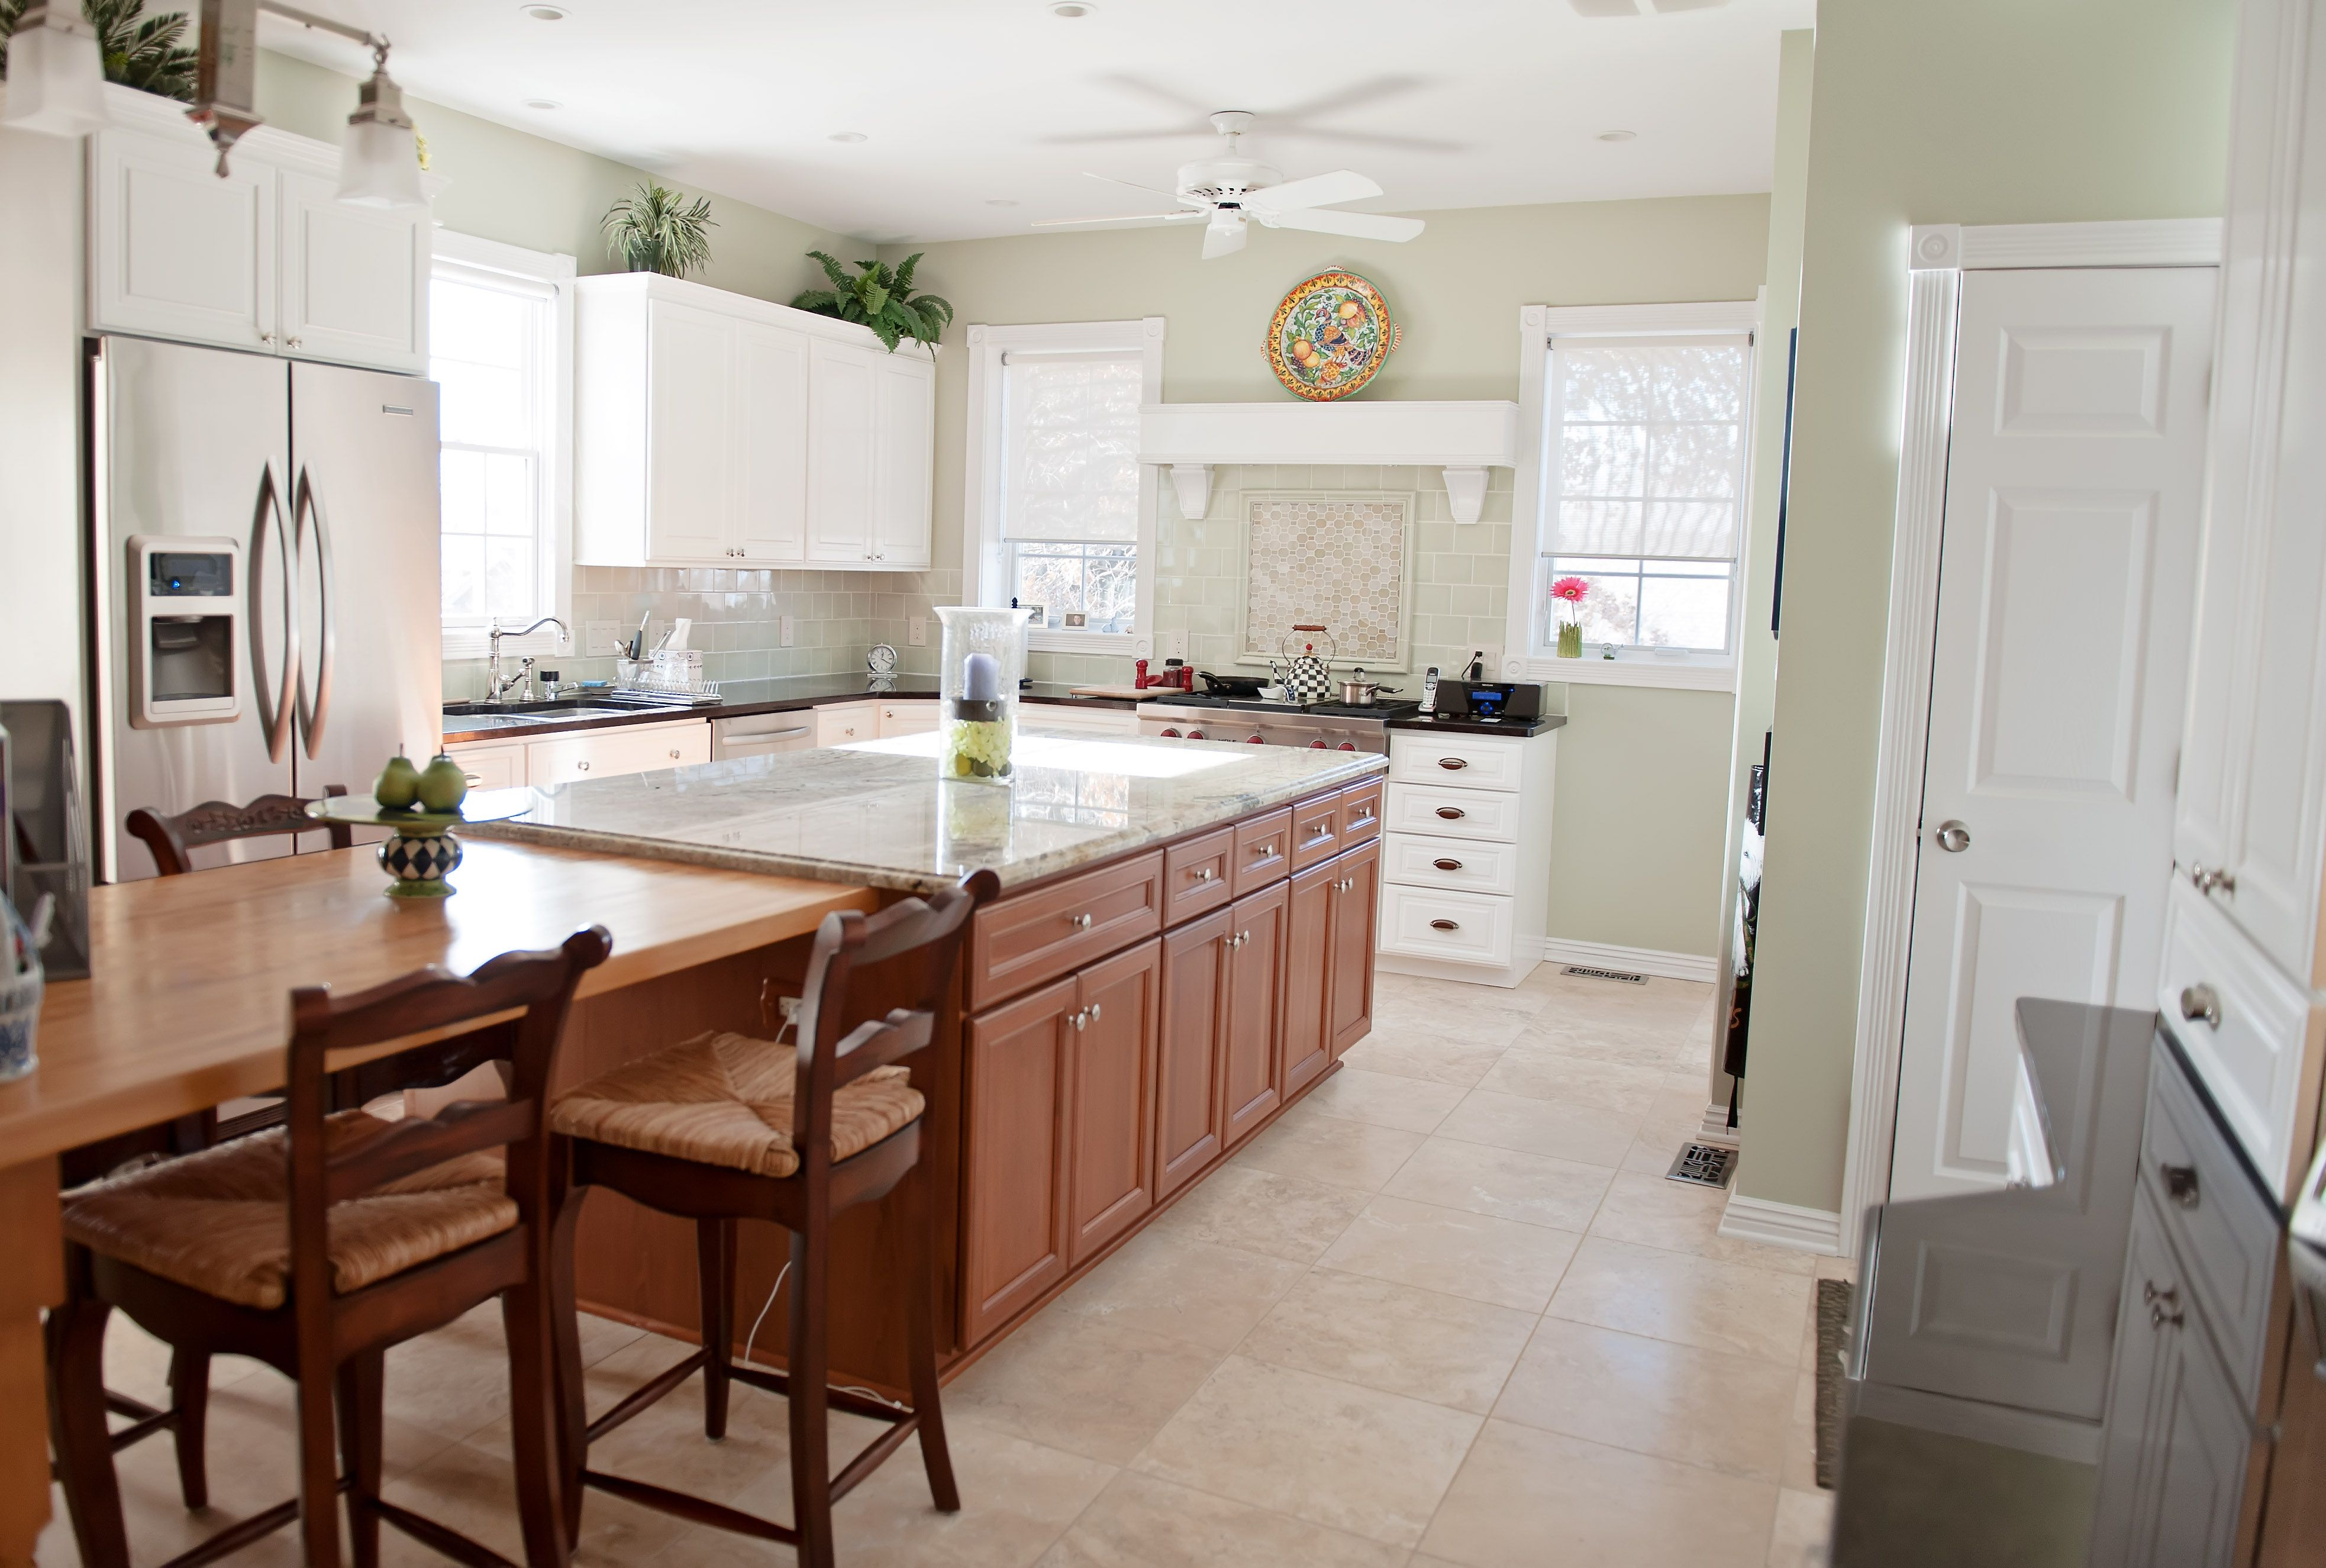 Kitchens By Reese Construction Inc Lincoln Ne Kitchen Home Decor Home